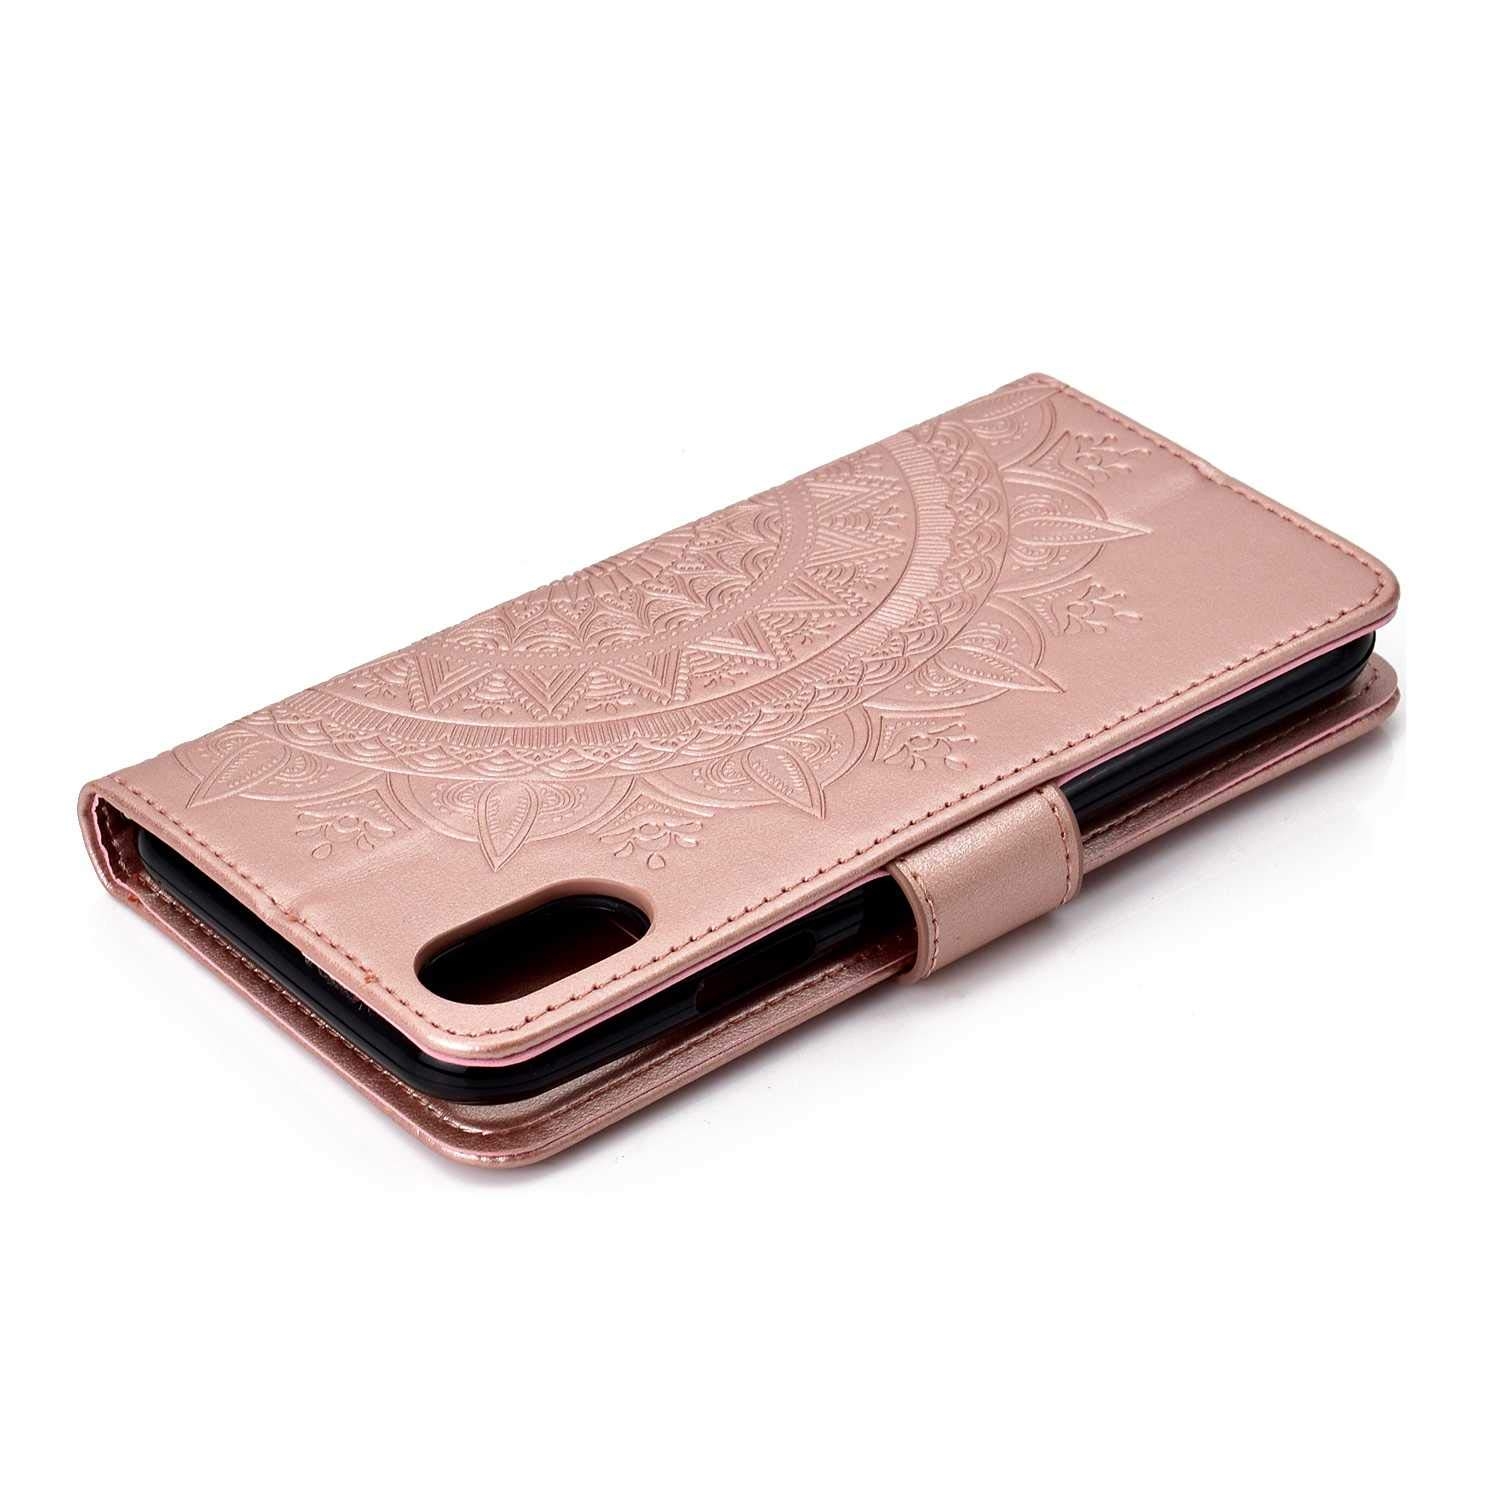 Case iPhone XR, Bear Village PU Leather Embossed Design Case with Card Holder and ID Slot, Wallet Flip Stand Cover for Apple iPhone XR (#1 Rose Gold) by Bear Village (Image #6)